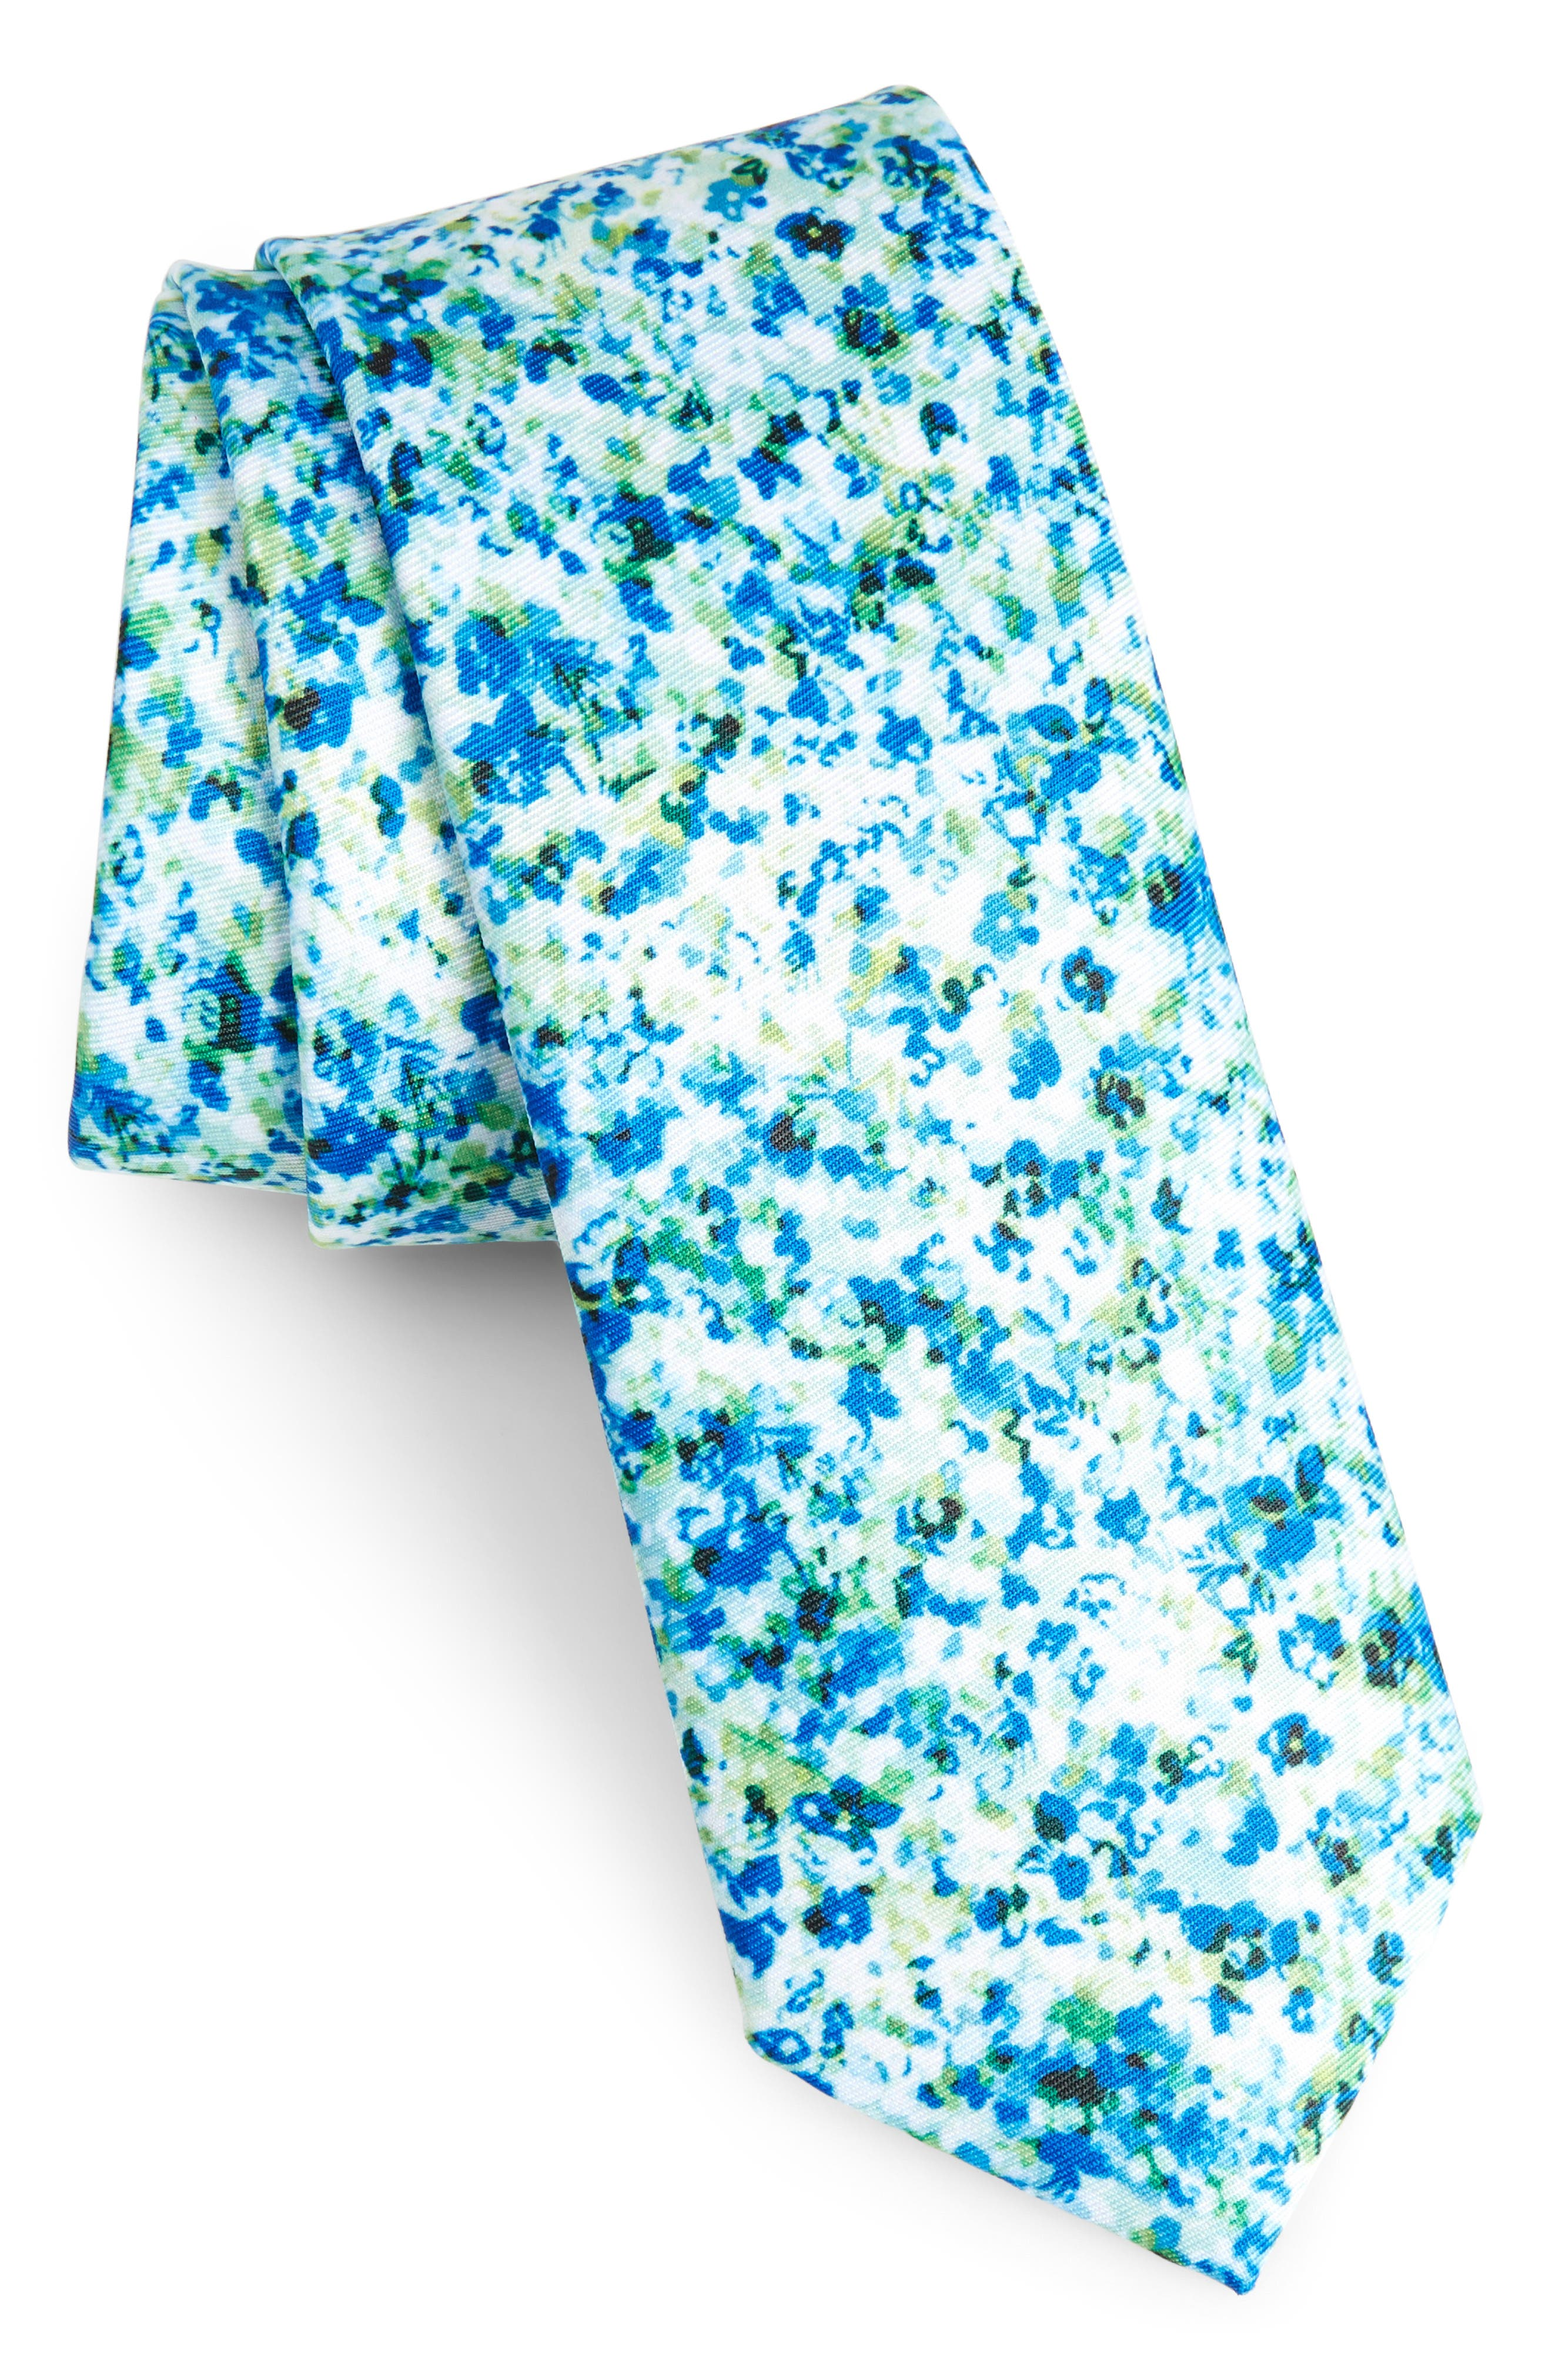 Marquette Floral Skinny Tie,                             Main thumbnail 1, color,                             300